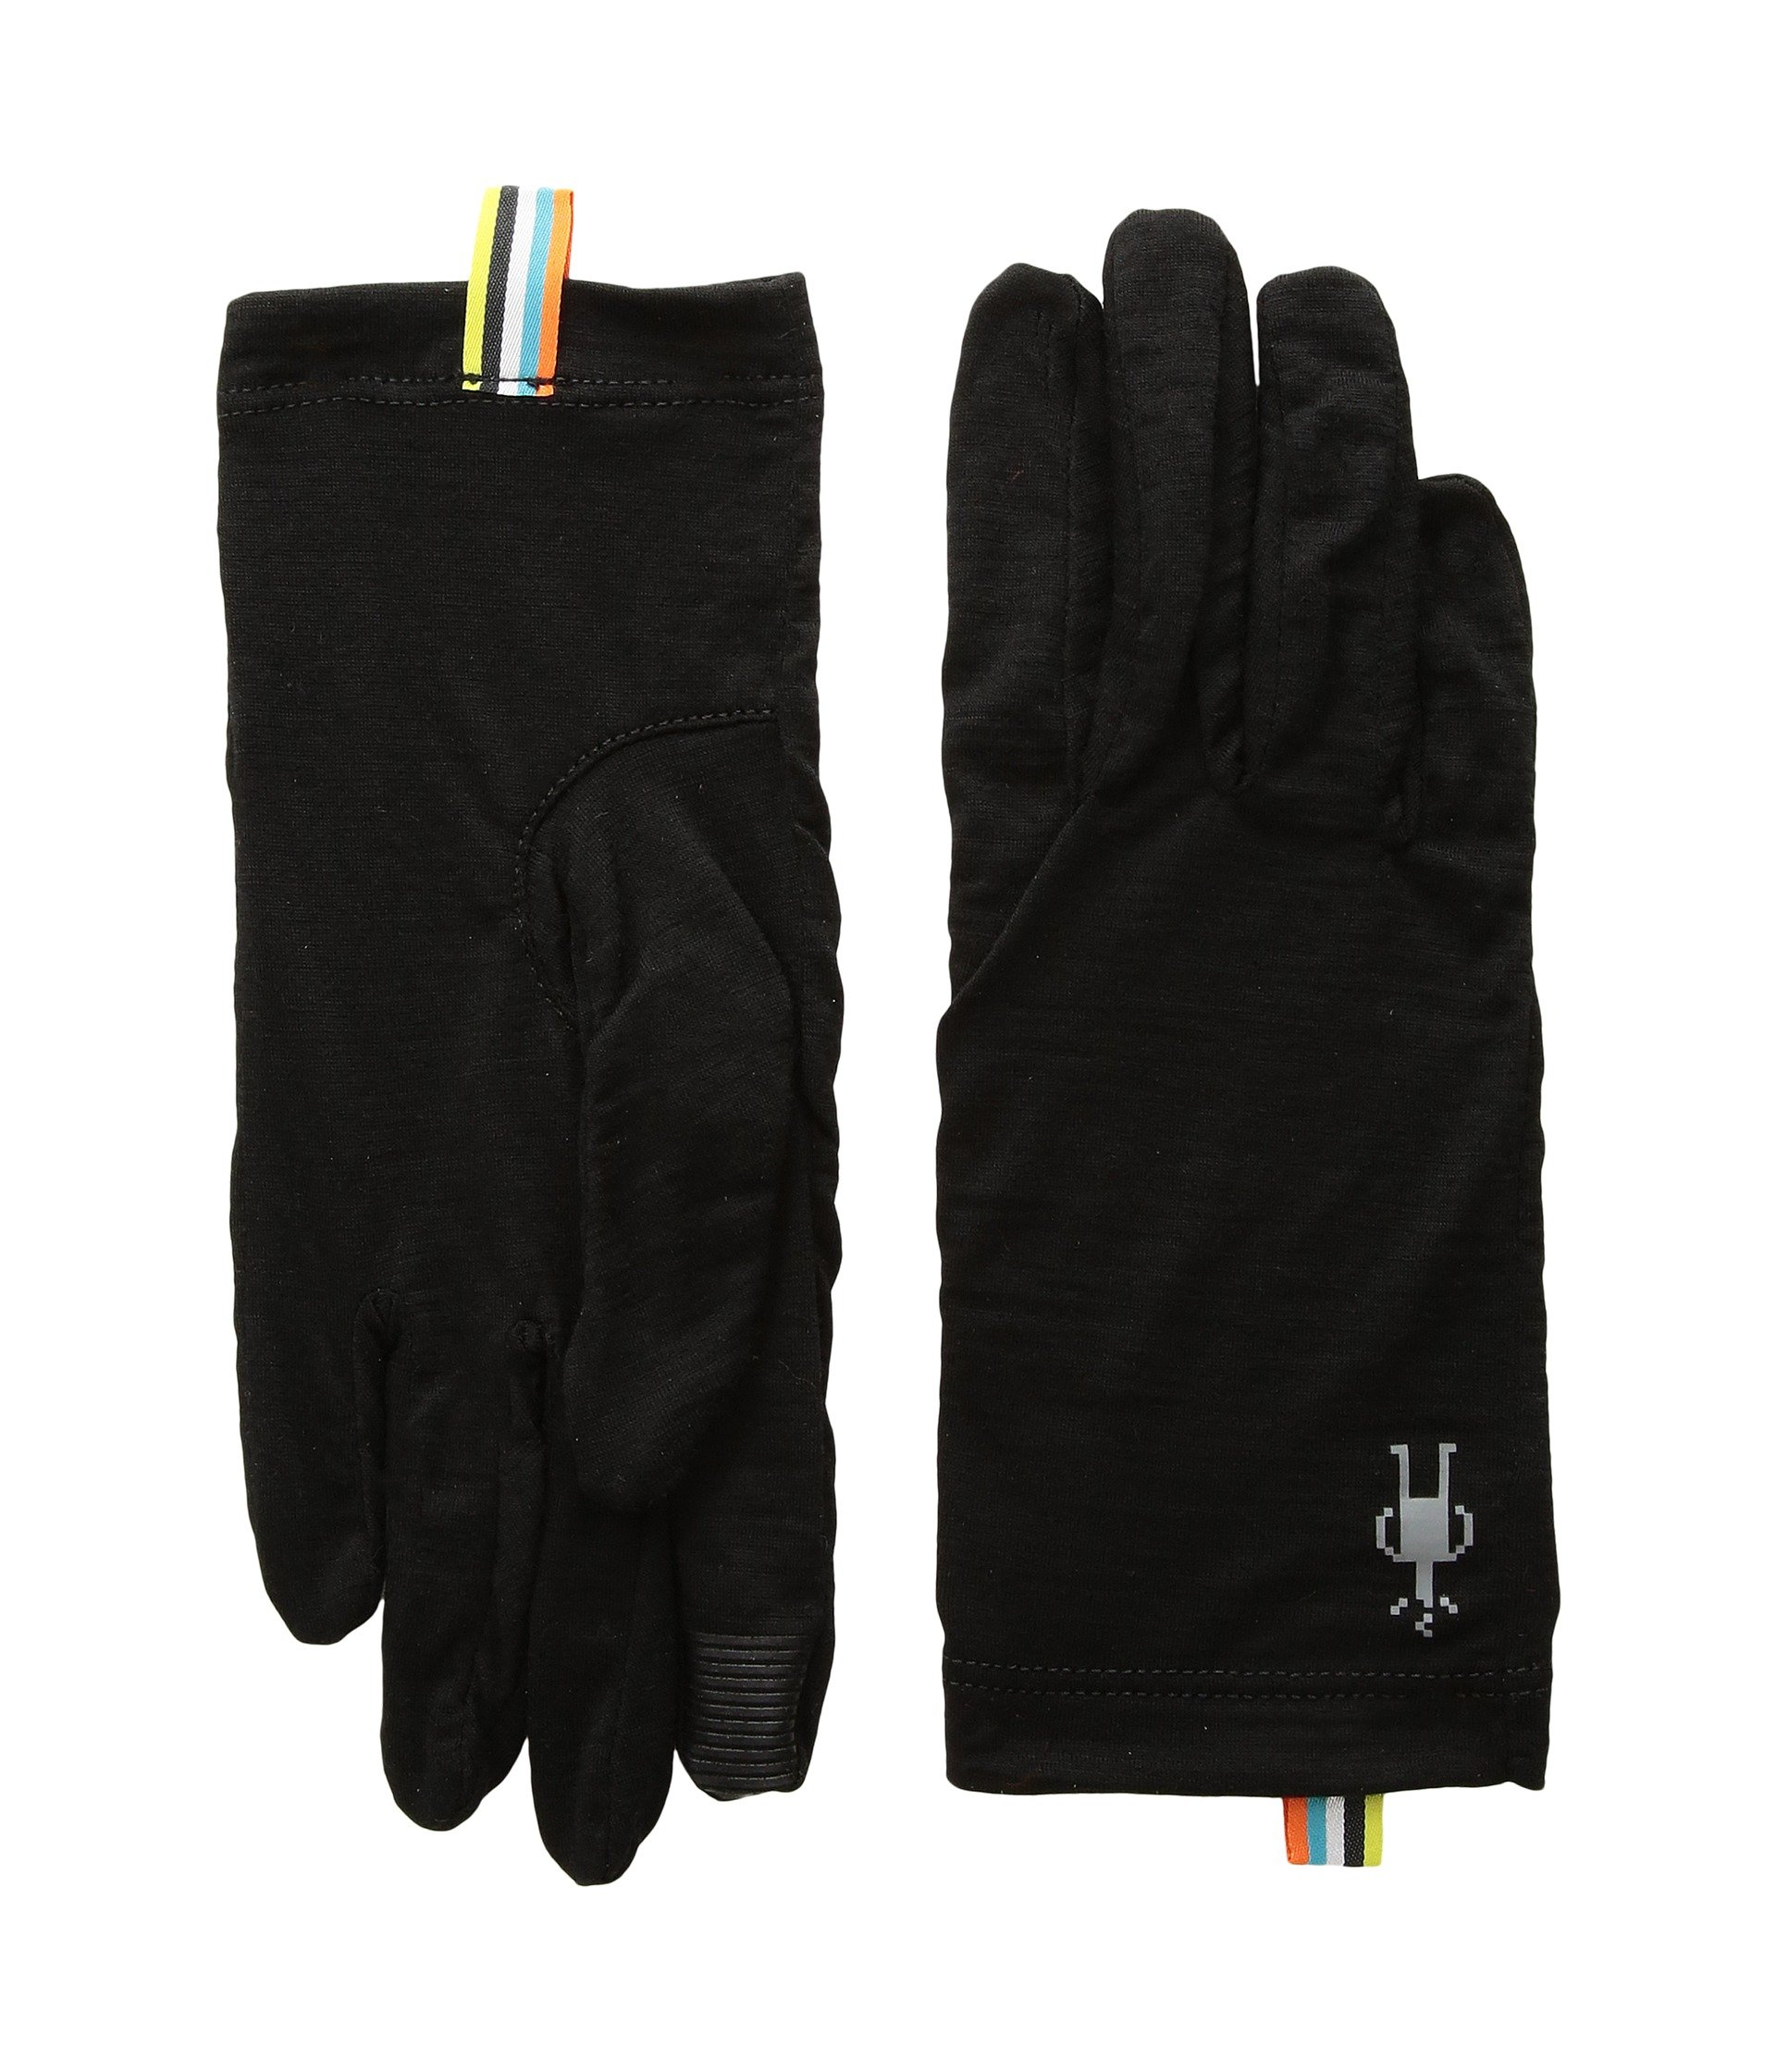 175051efef1 Women s Gloves + FREE SHIPPING